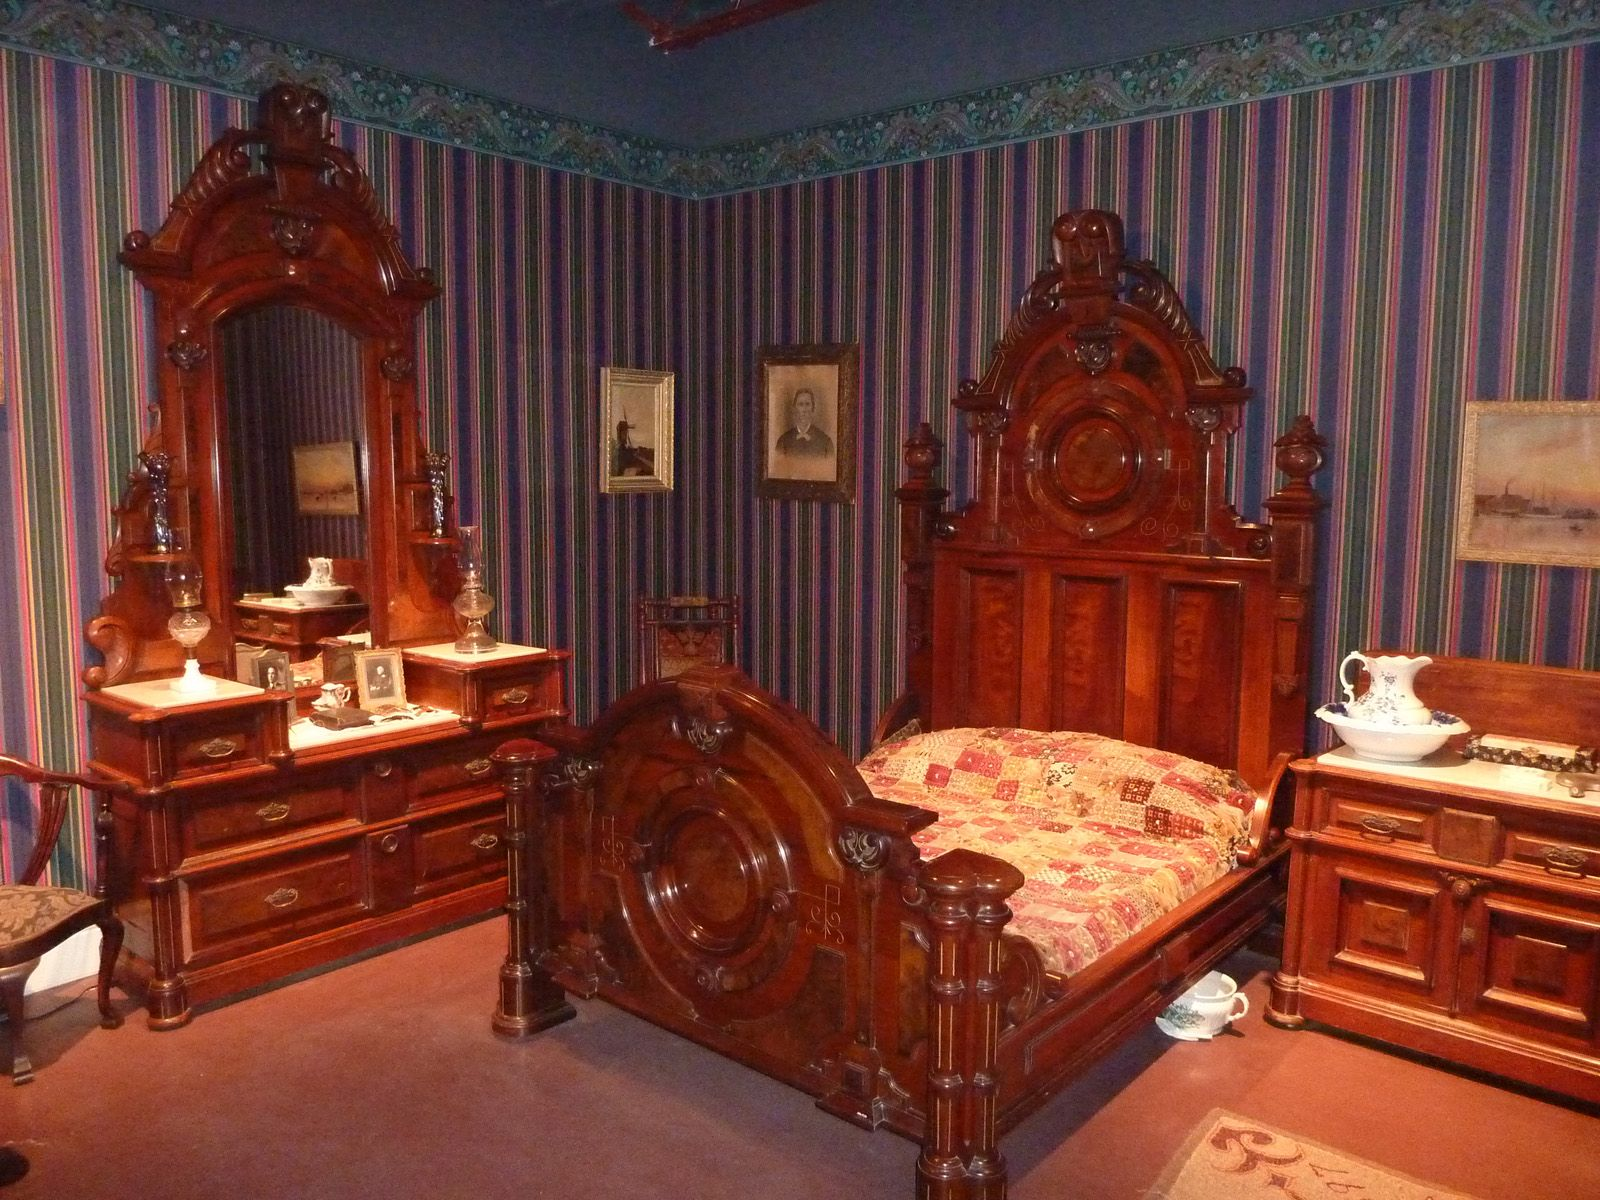 Antique victorian bedroom furniture - Find This Pin And More On Victorian Nursery Elegant Victorian Bedroom Furniture Of Antique